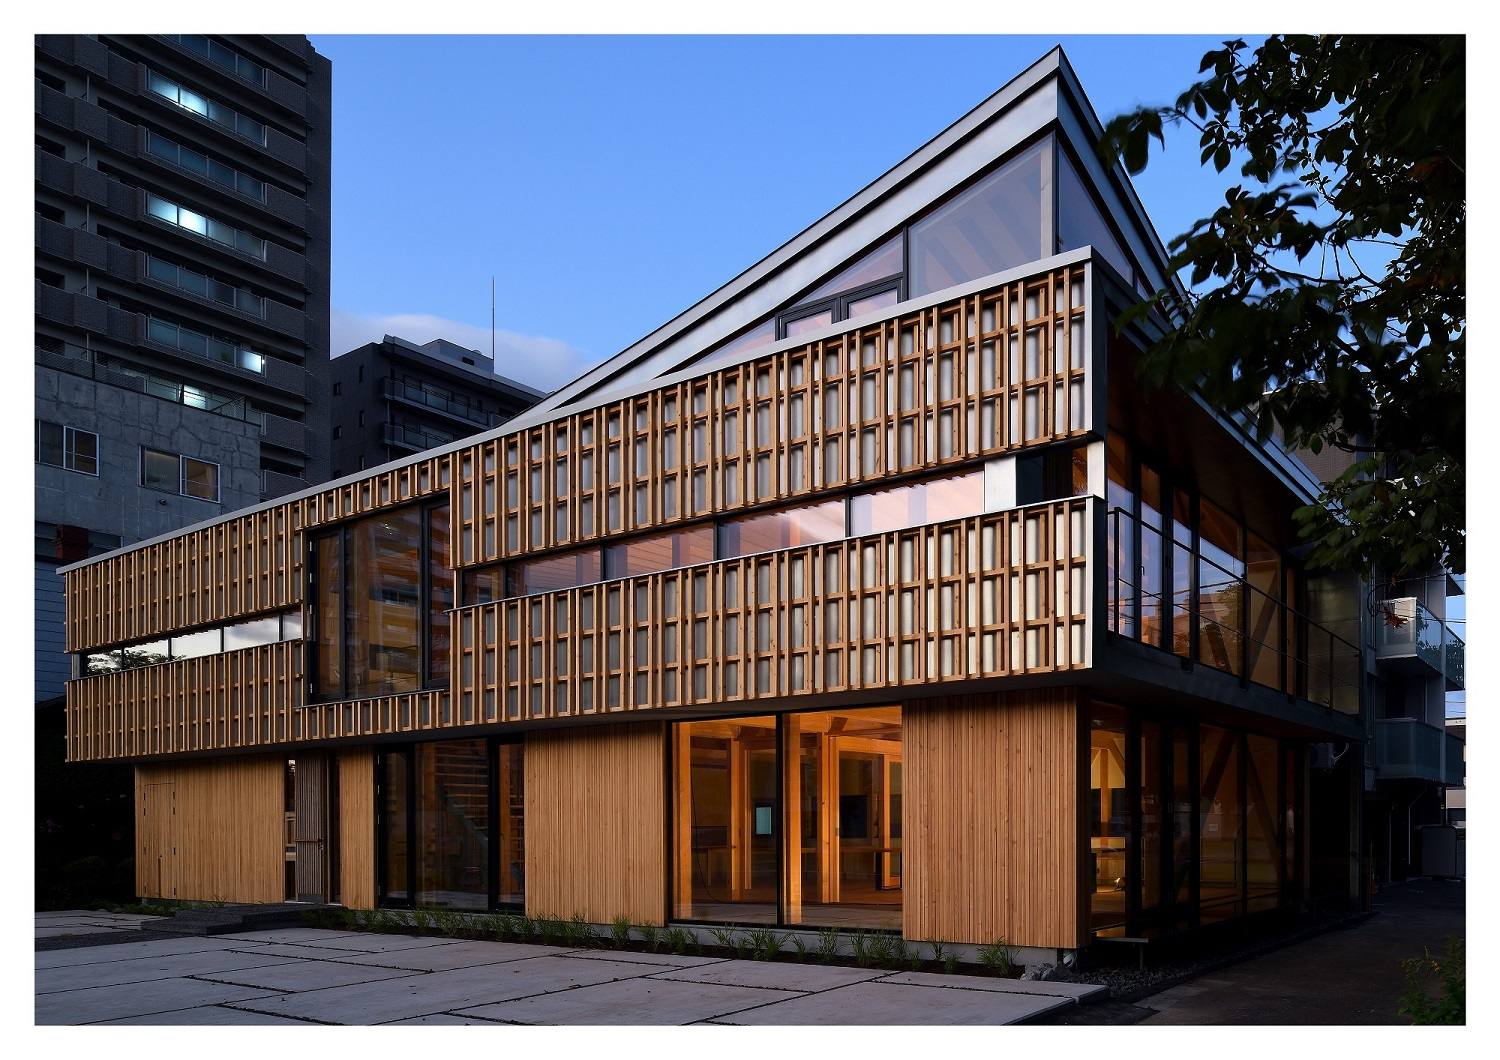 The project was based on the premise of using local materials. Ezo Pine, a native species of Hokkaido, was selected as the structural material, and the conventional post and beam structure was mainly used. High sidelights were installed on the northeast a Ken Goshima